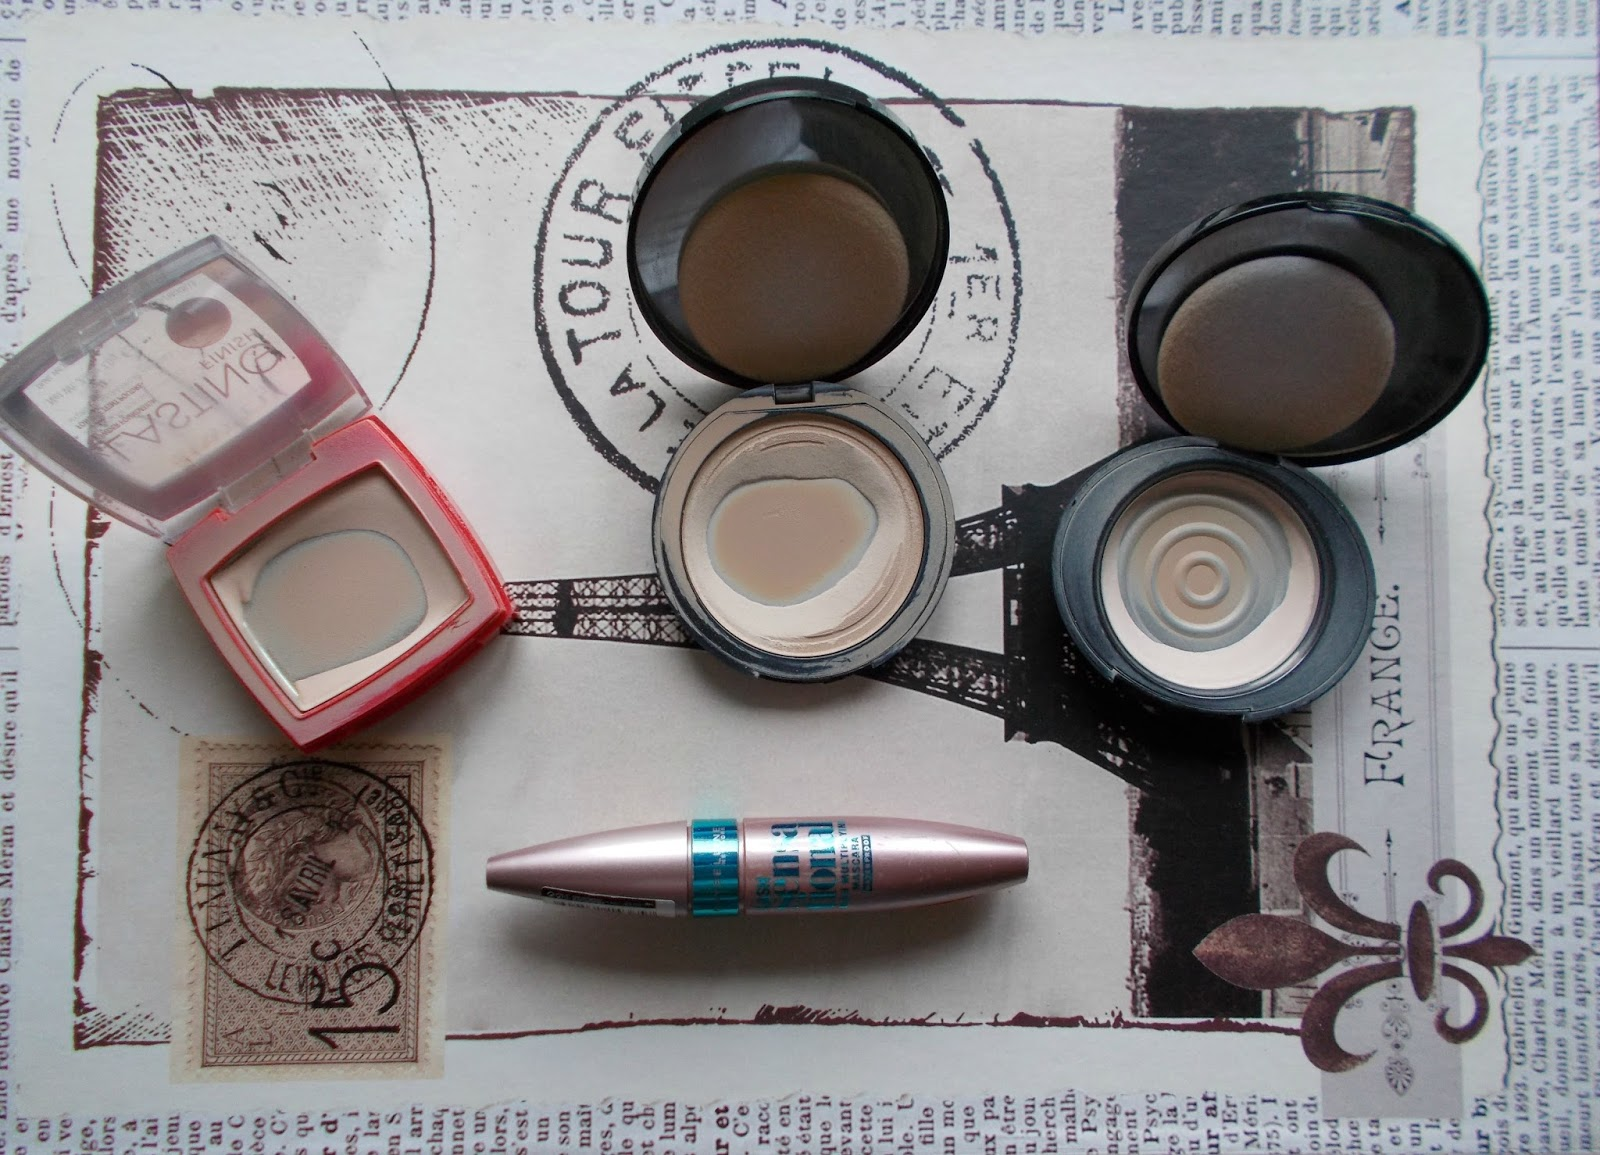 makeup empties reviews rimmel soap and glory no7 powder maybelline lash sensational mascara